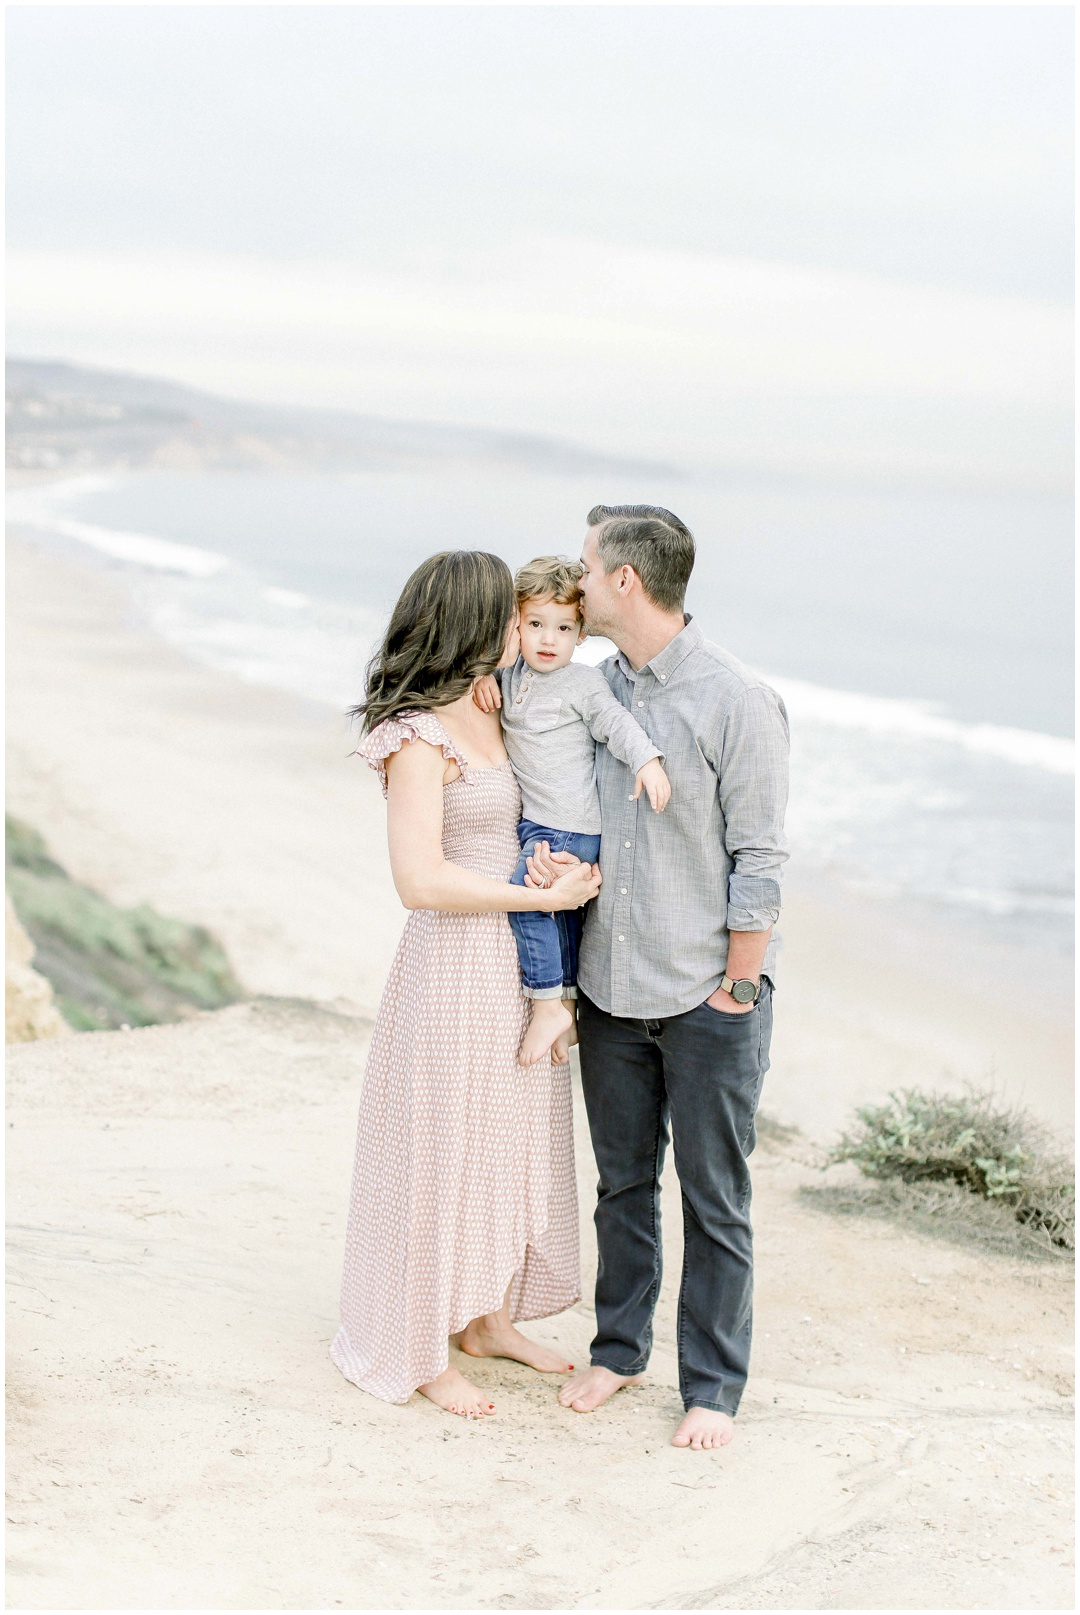 Orange_County_Family_Photographer_Newport_Beach_Family_Photographer_Newport_Beach_Newborn_Photographer_Orange_County_Family_Photographer_Cori_Kleckner_Photography_Huntington_Beach_Photographer_Asher_Family_2620.jpg